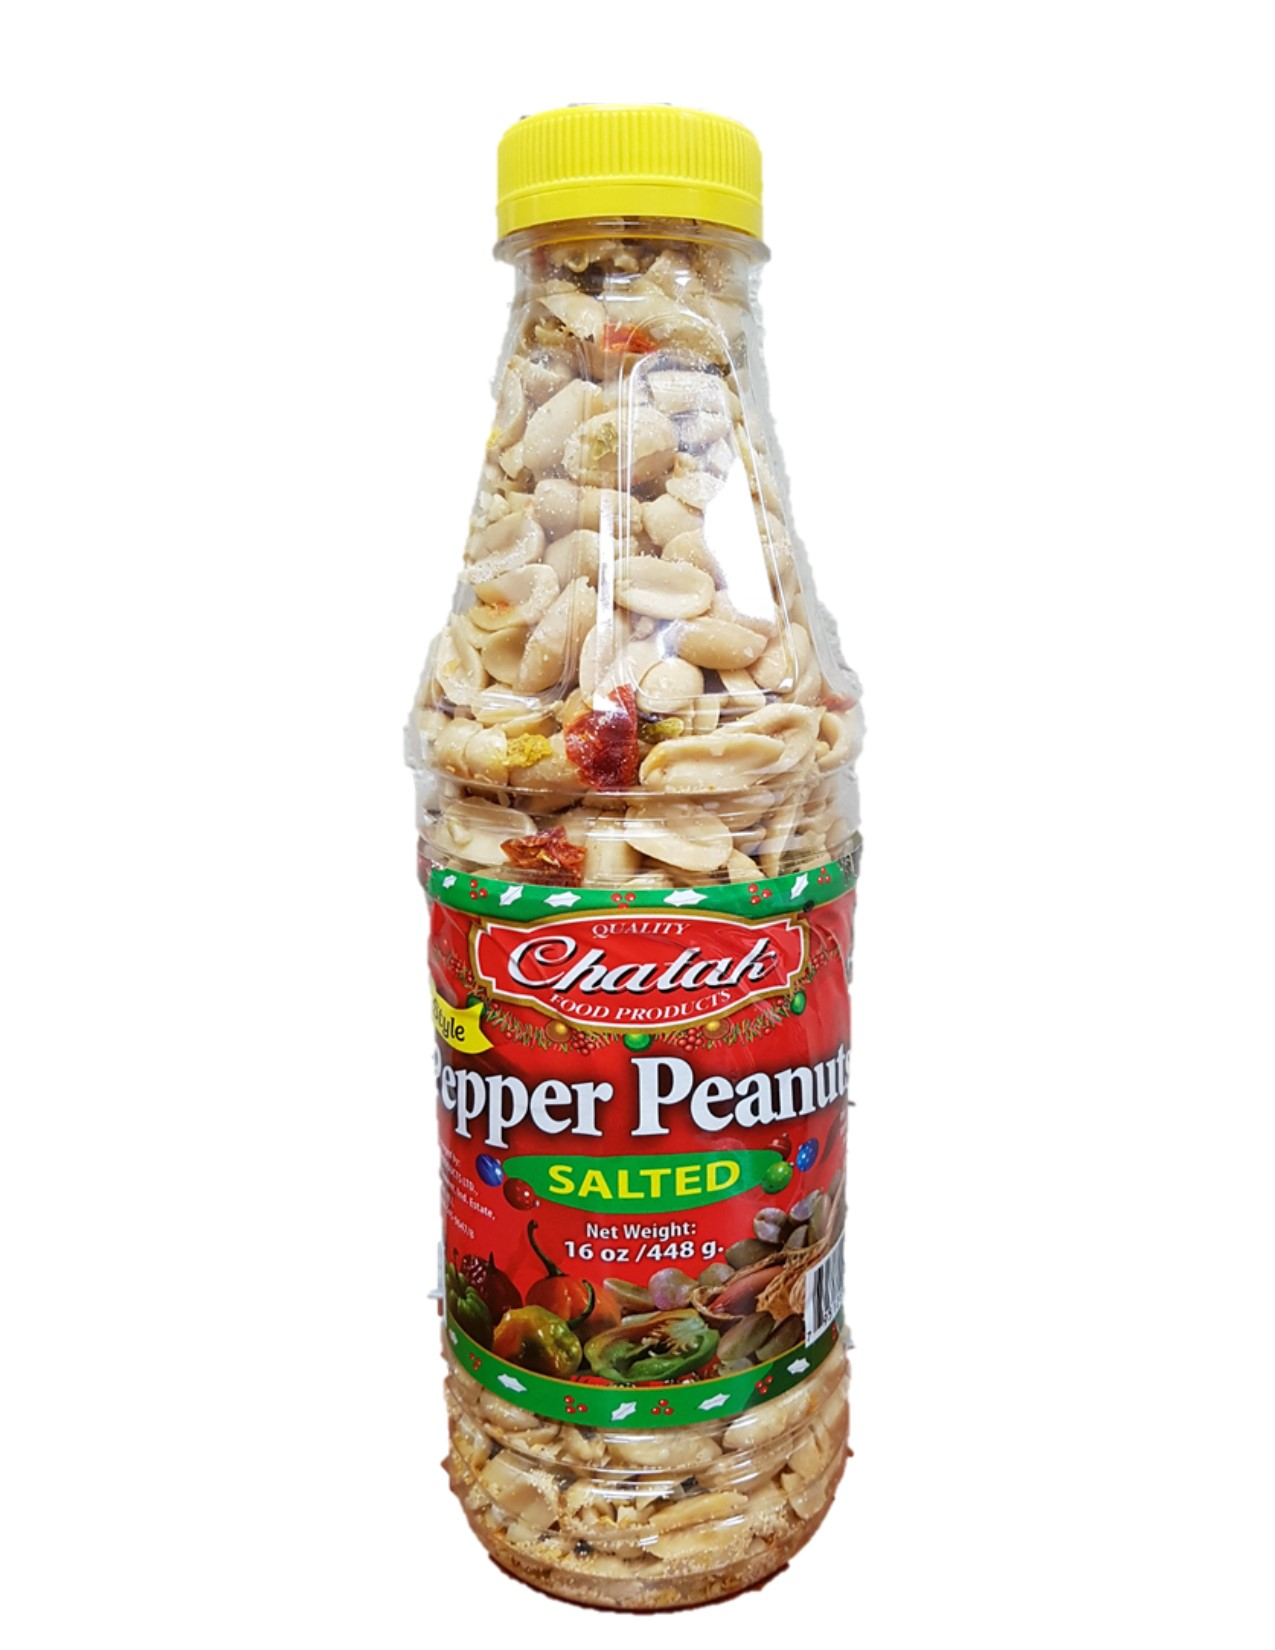 Chatak Peppered Peanuts 16oz